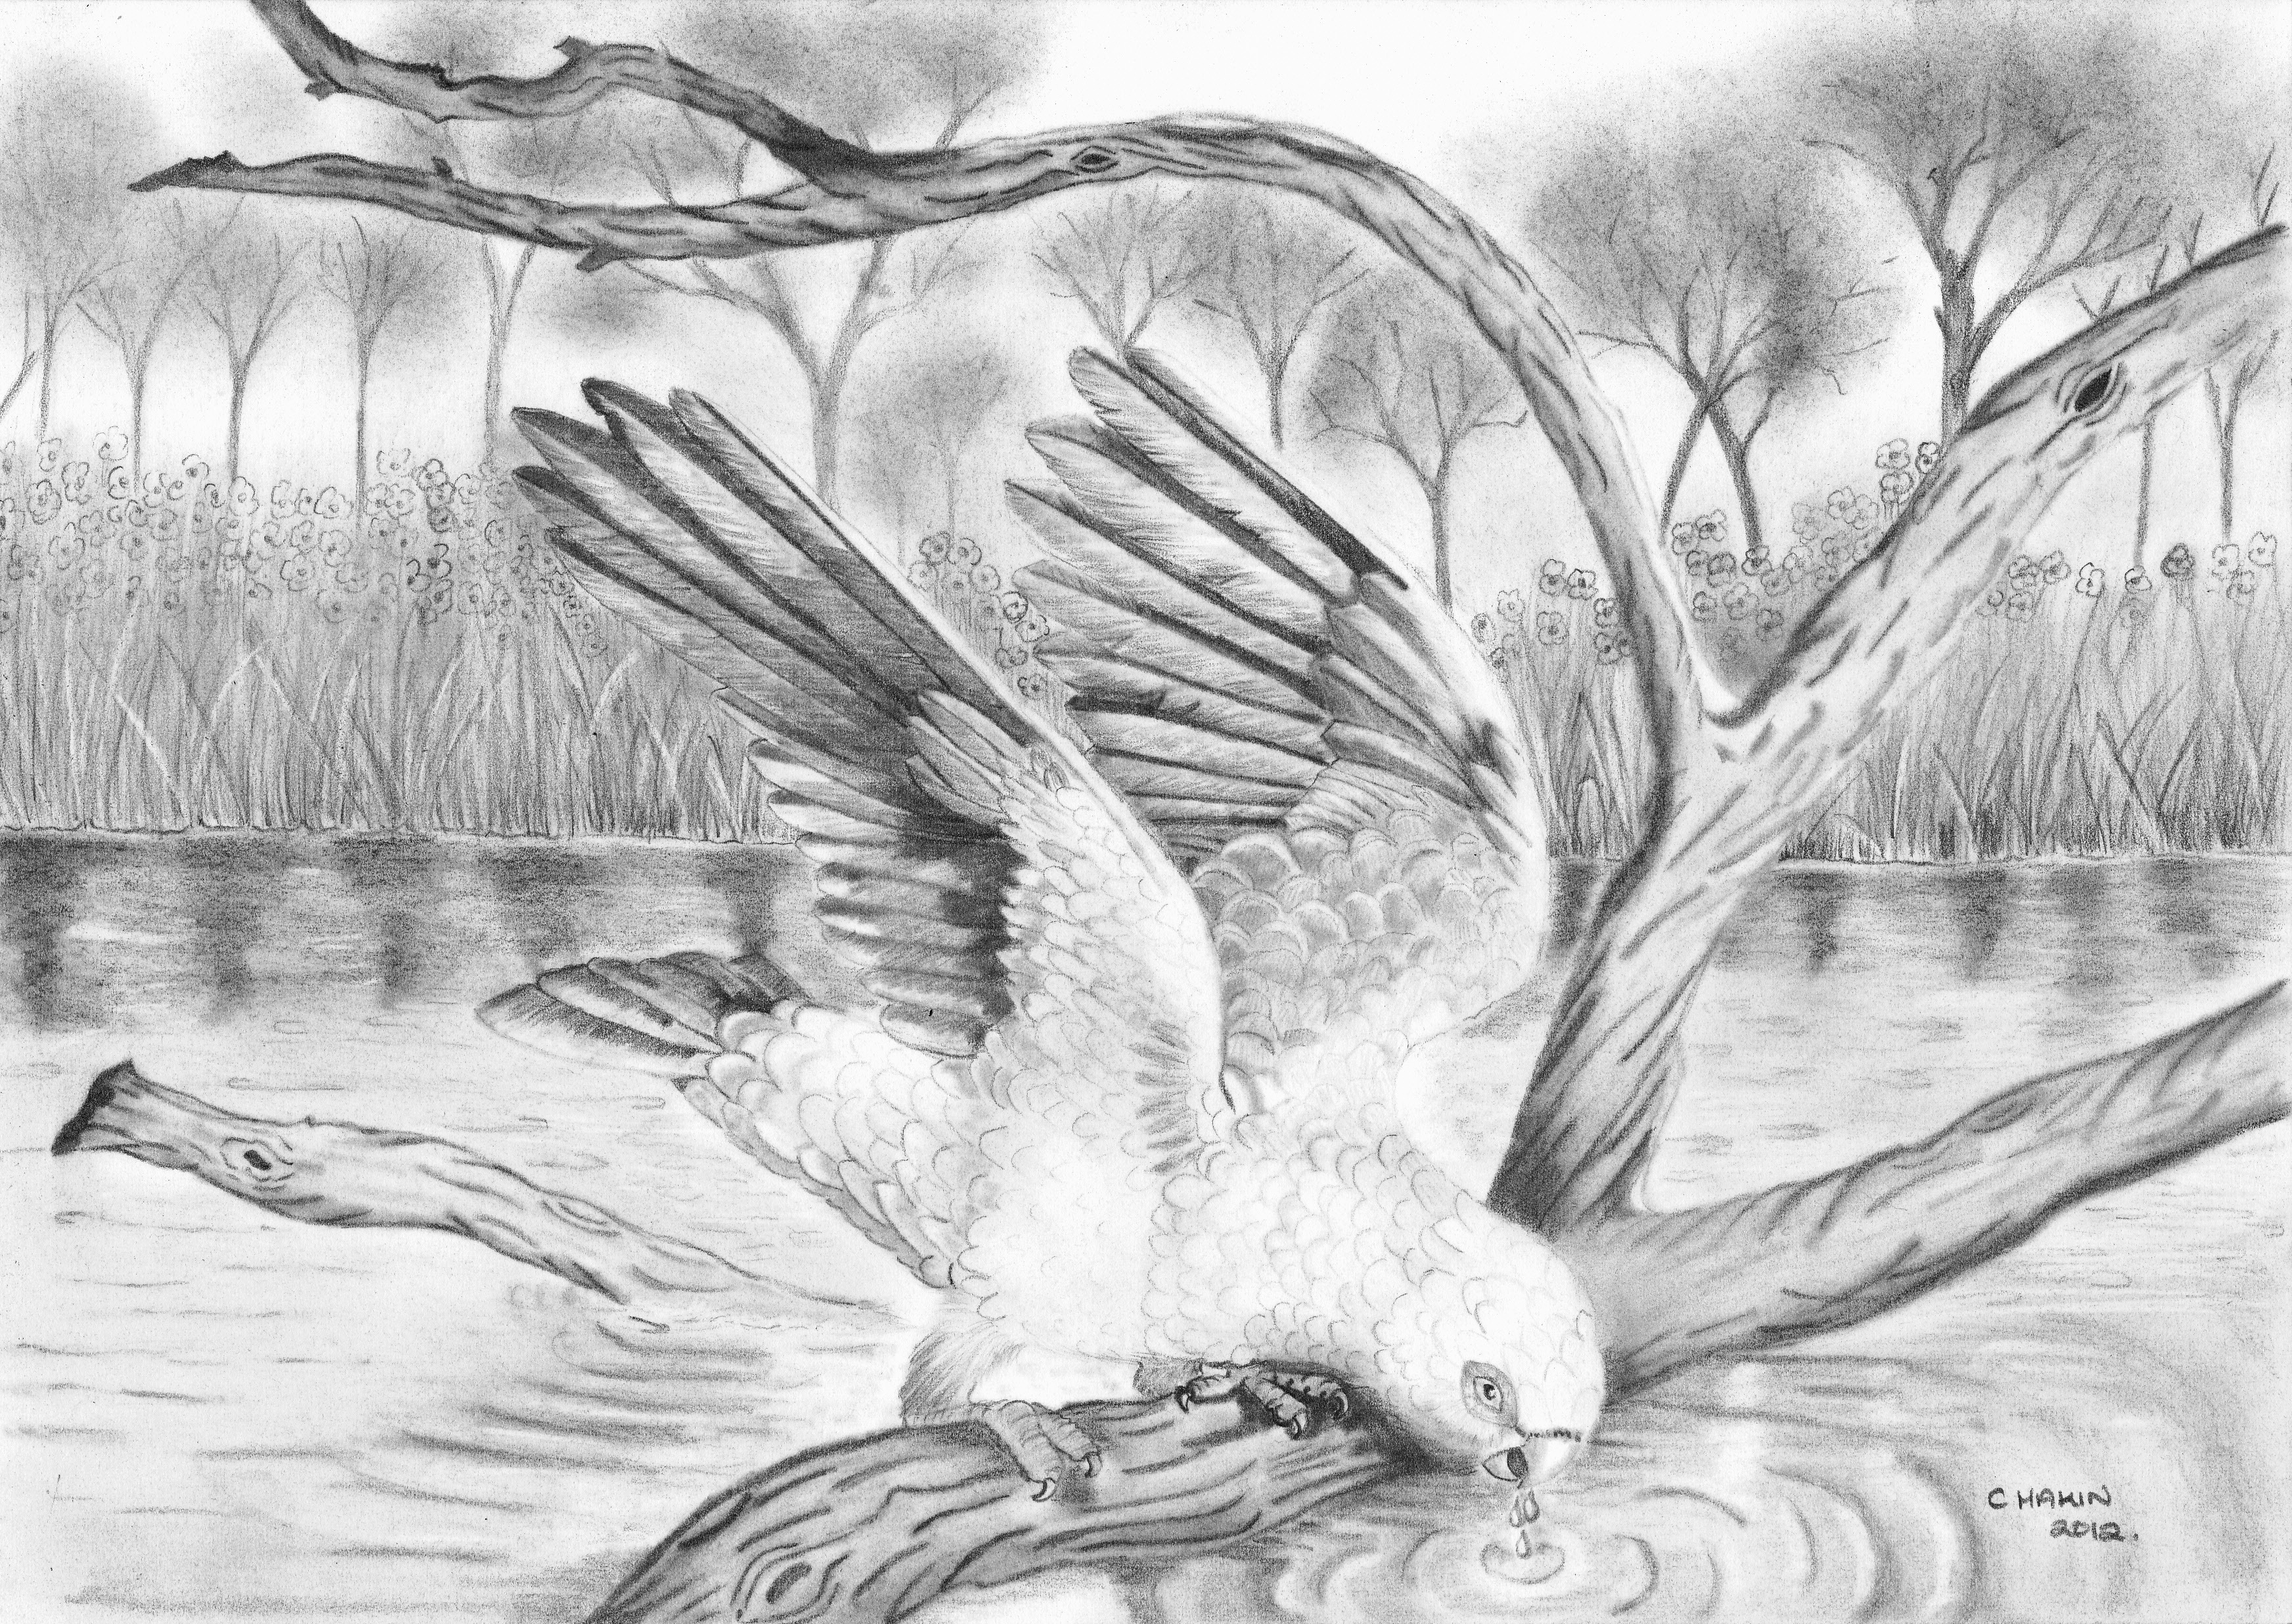 Drawn scenic natural scenery Pinterest scenery of draw of